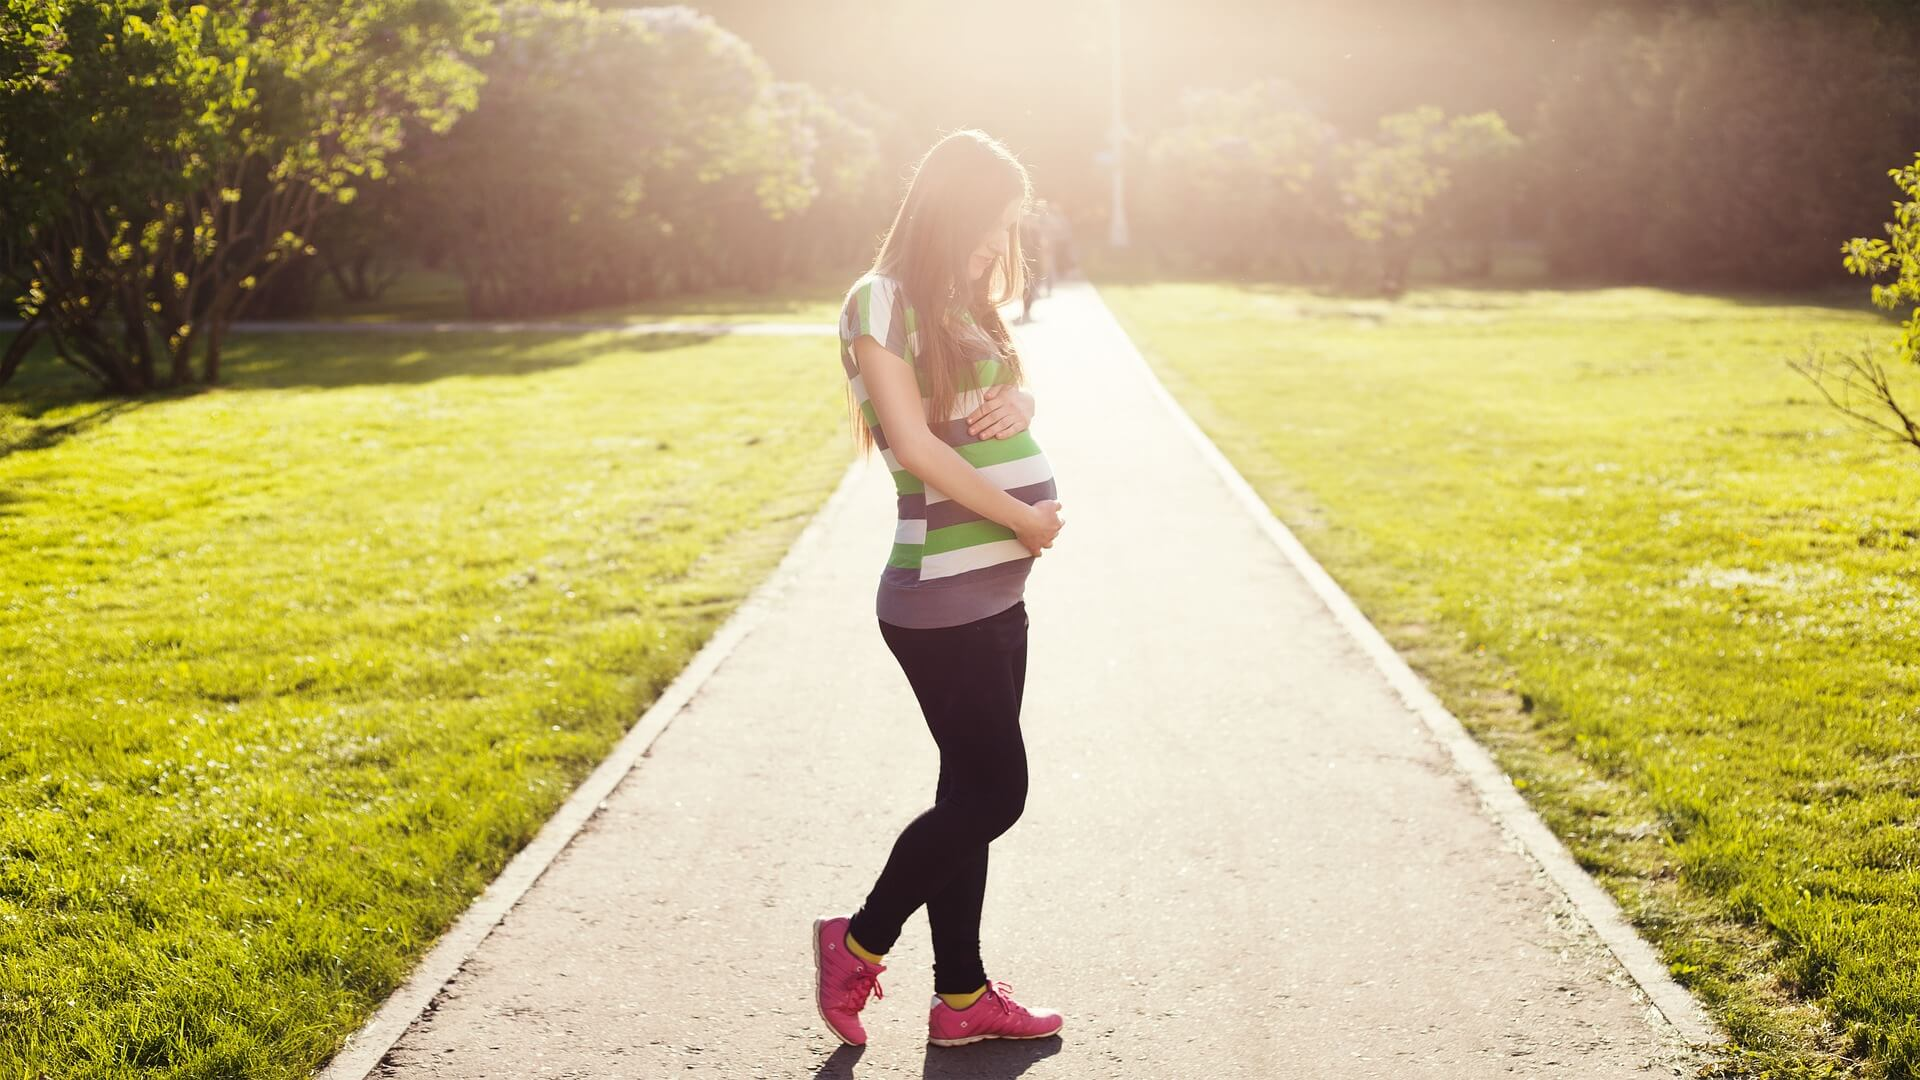 Losing Weight While Pregnant